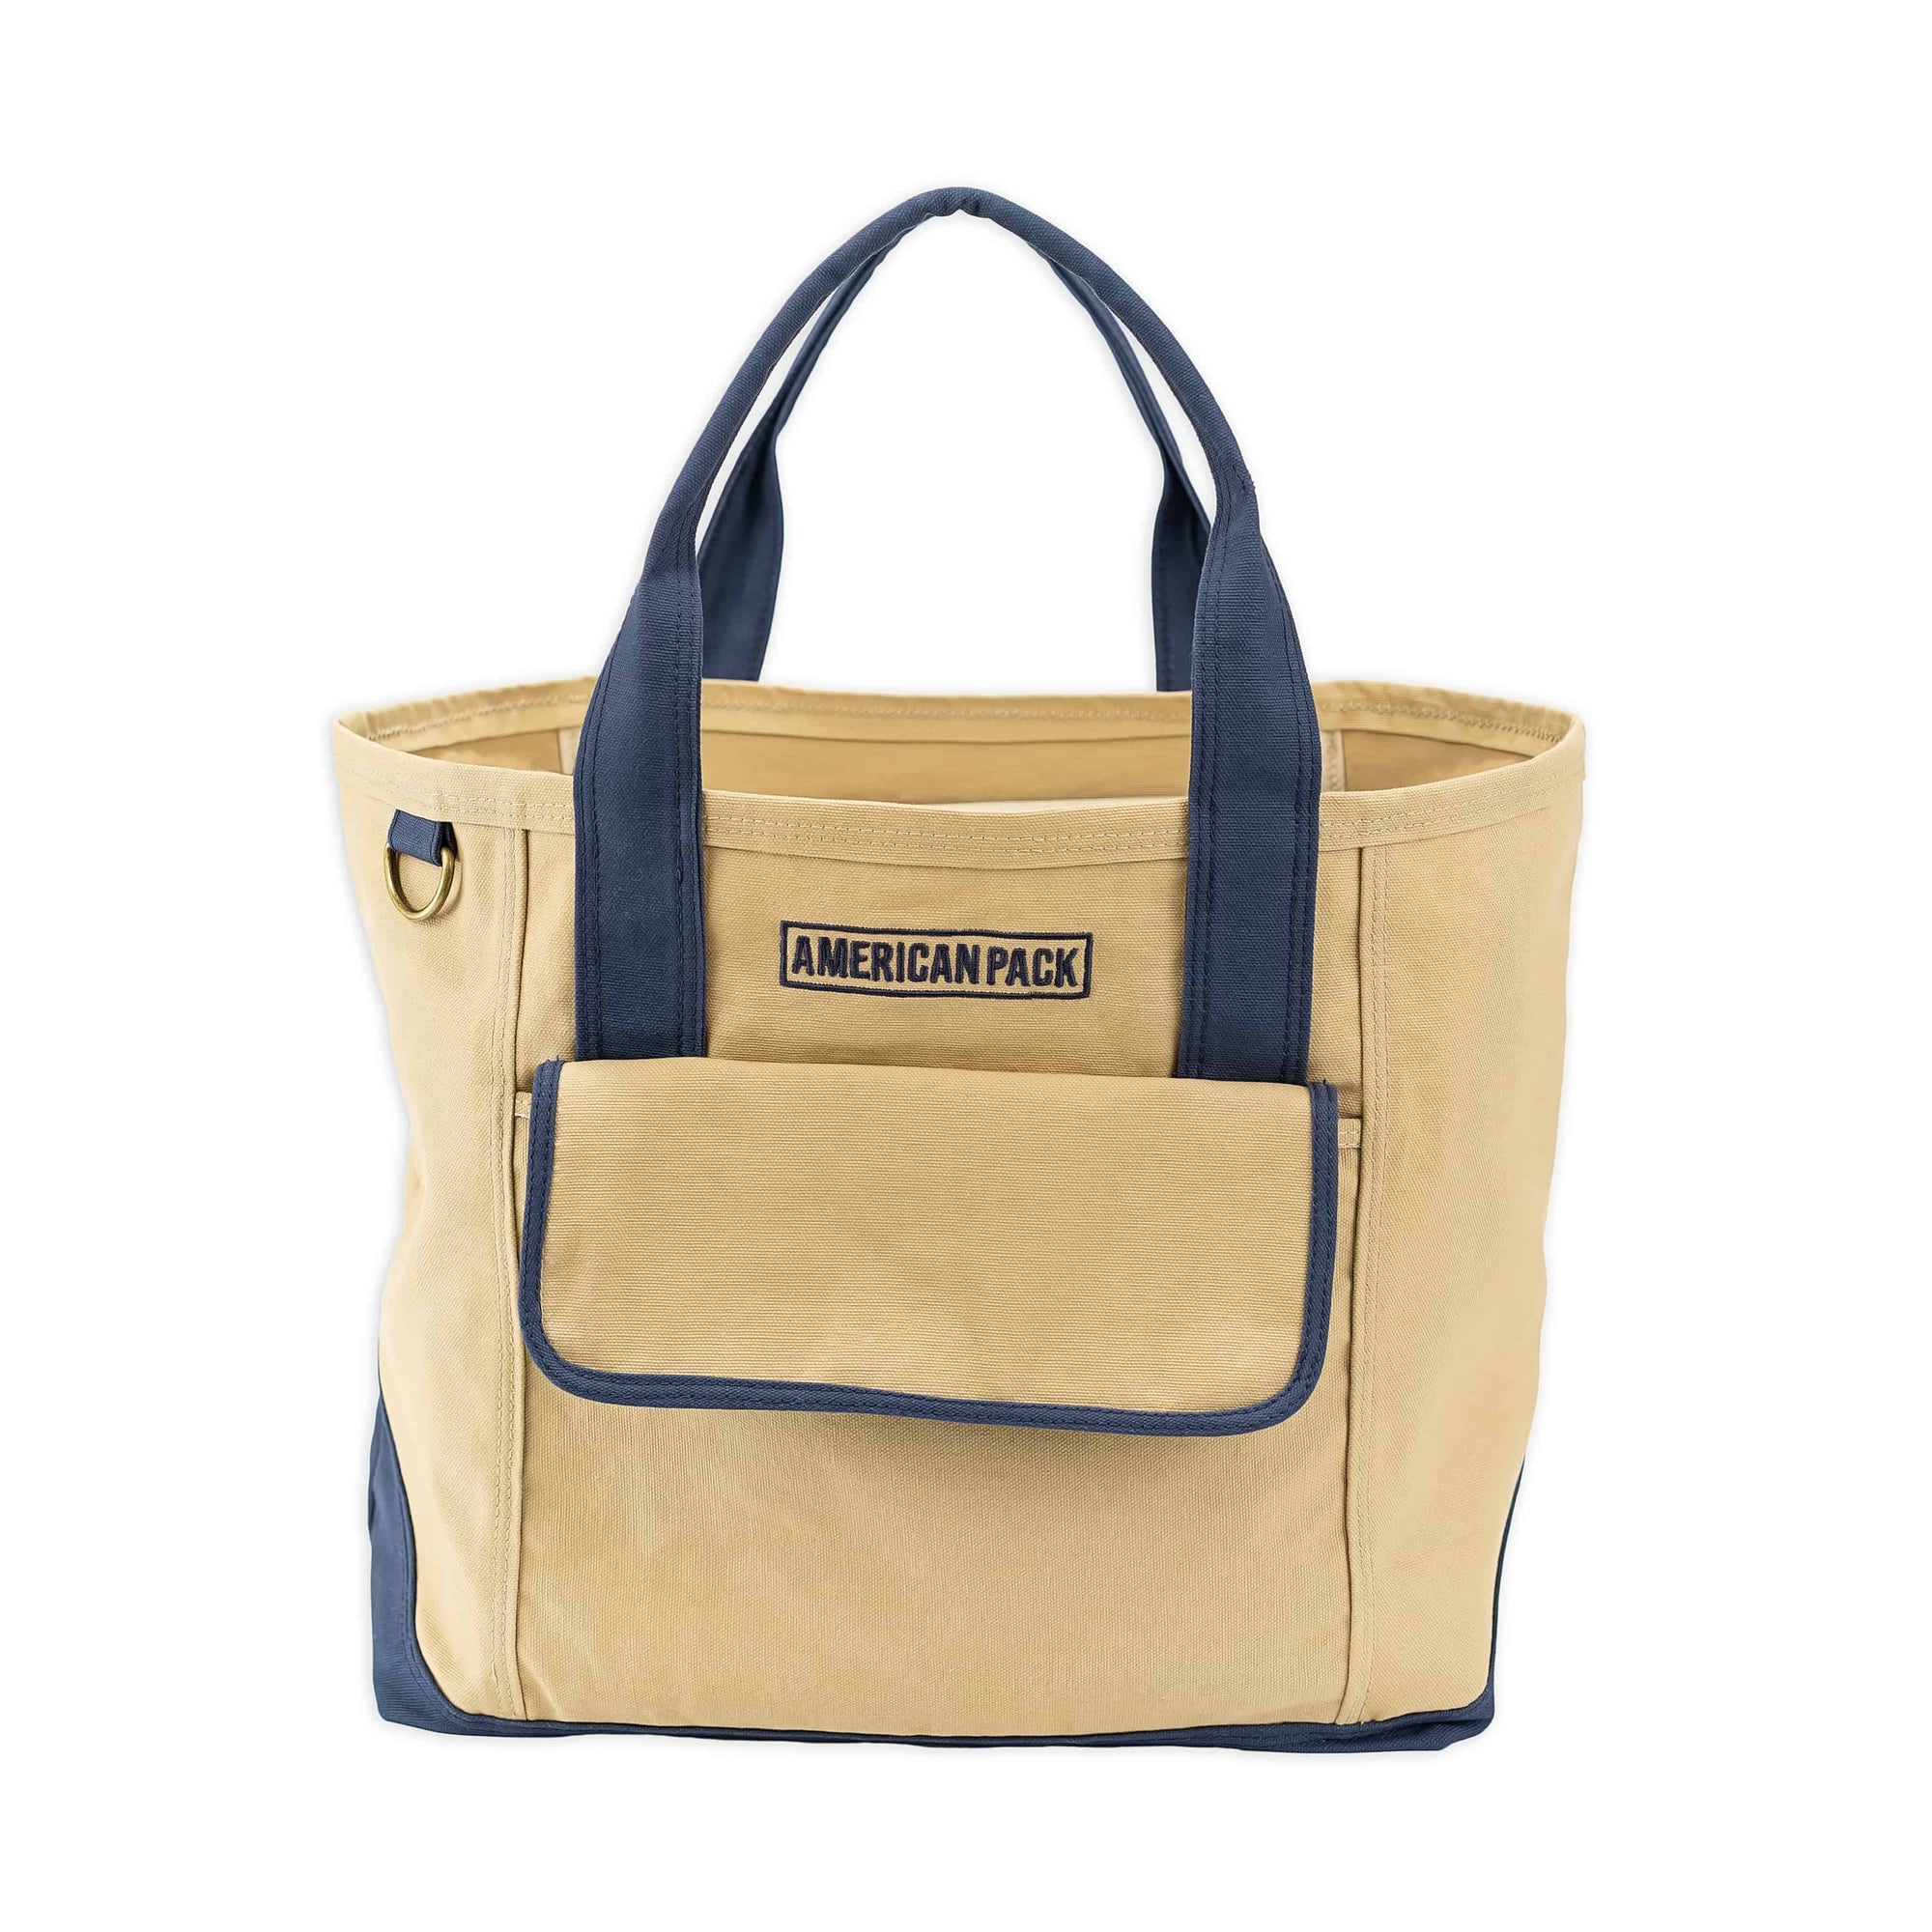 American Pack Tote Bag